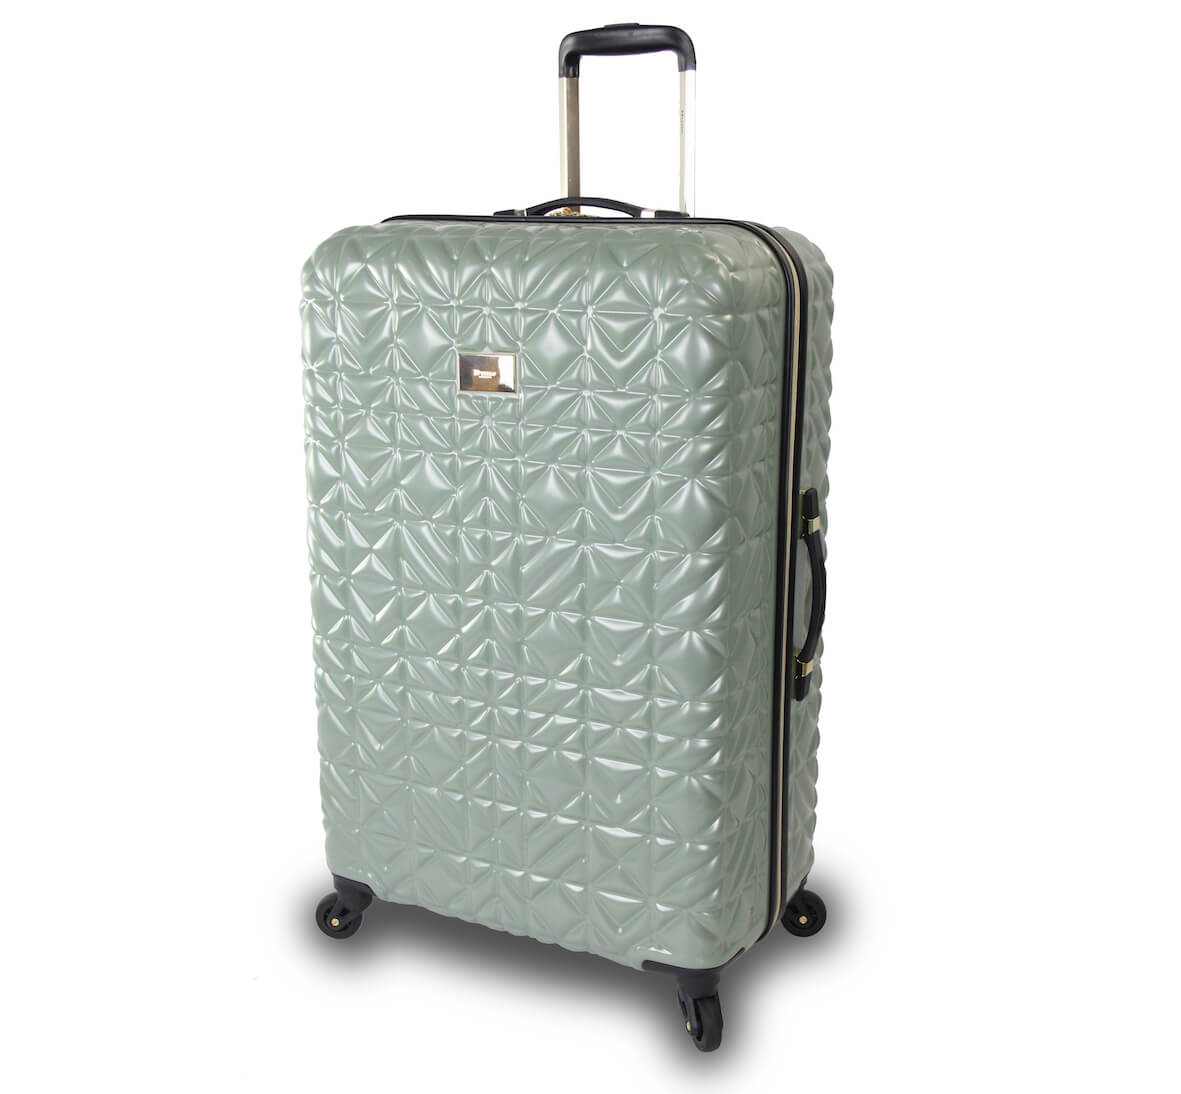 Dune London Tovangelina 77cm 4-Wheel Suitcase